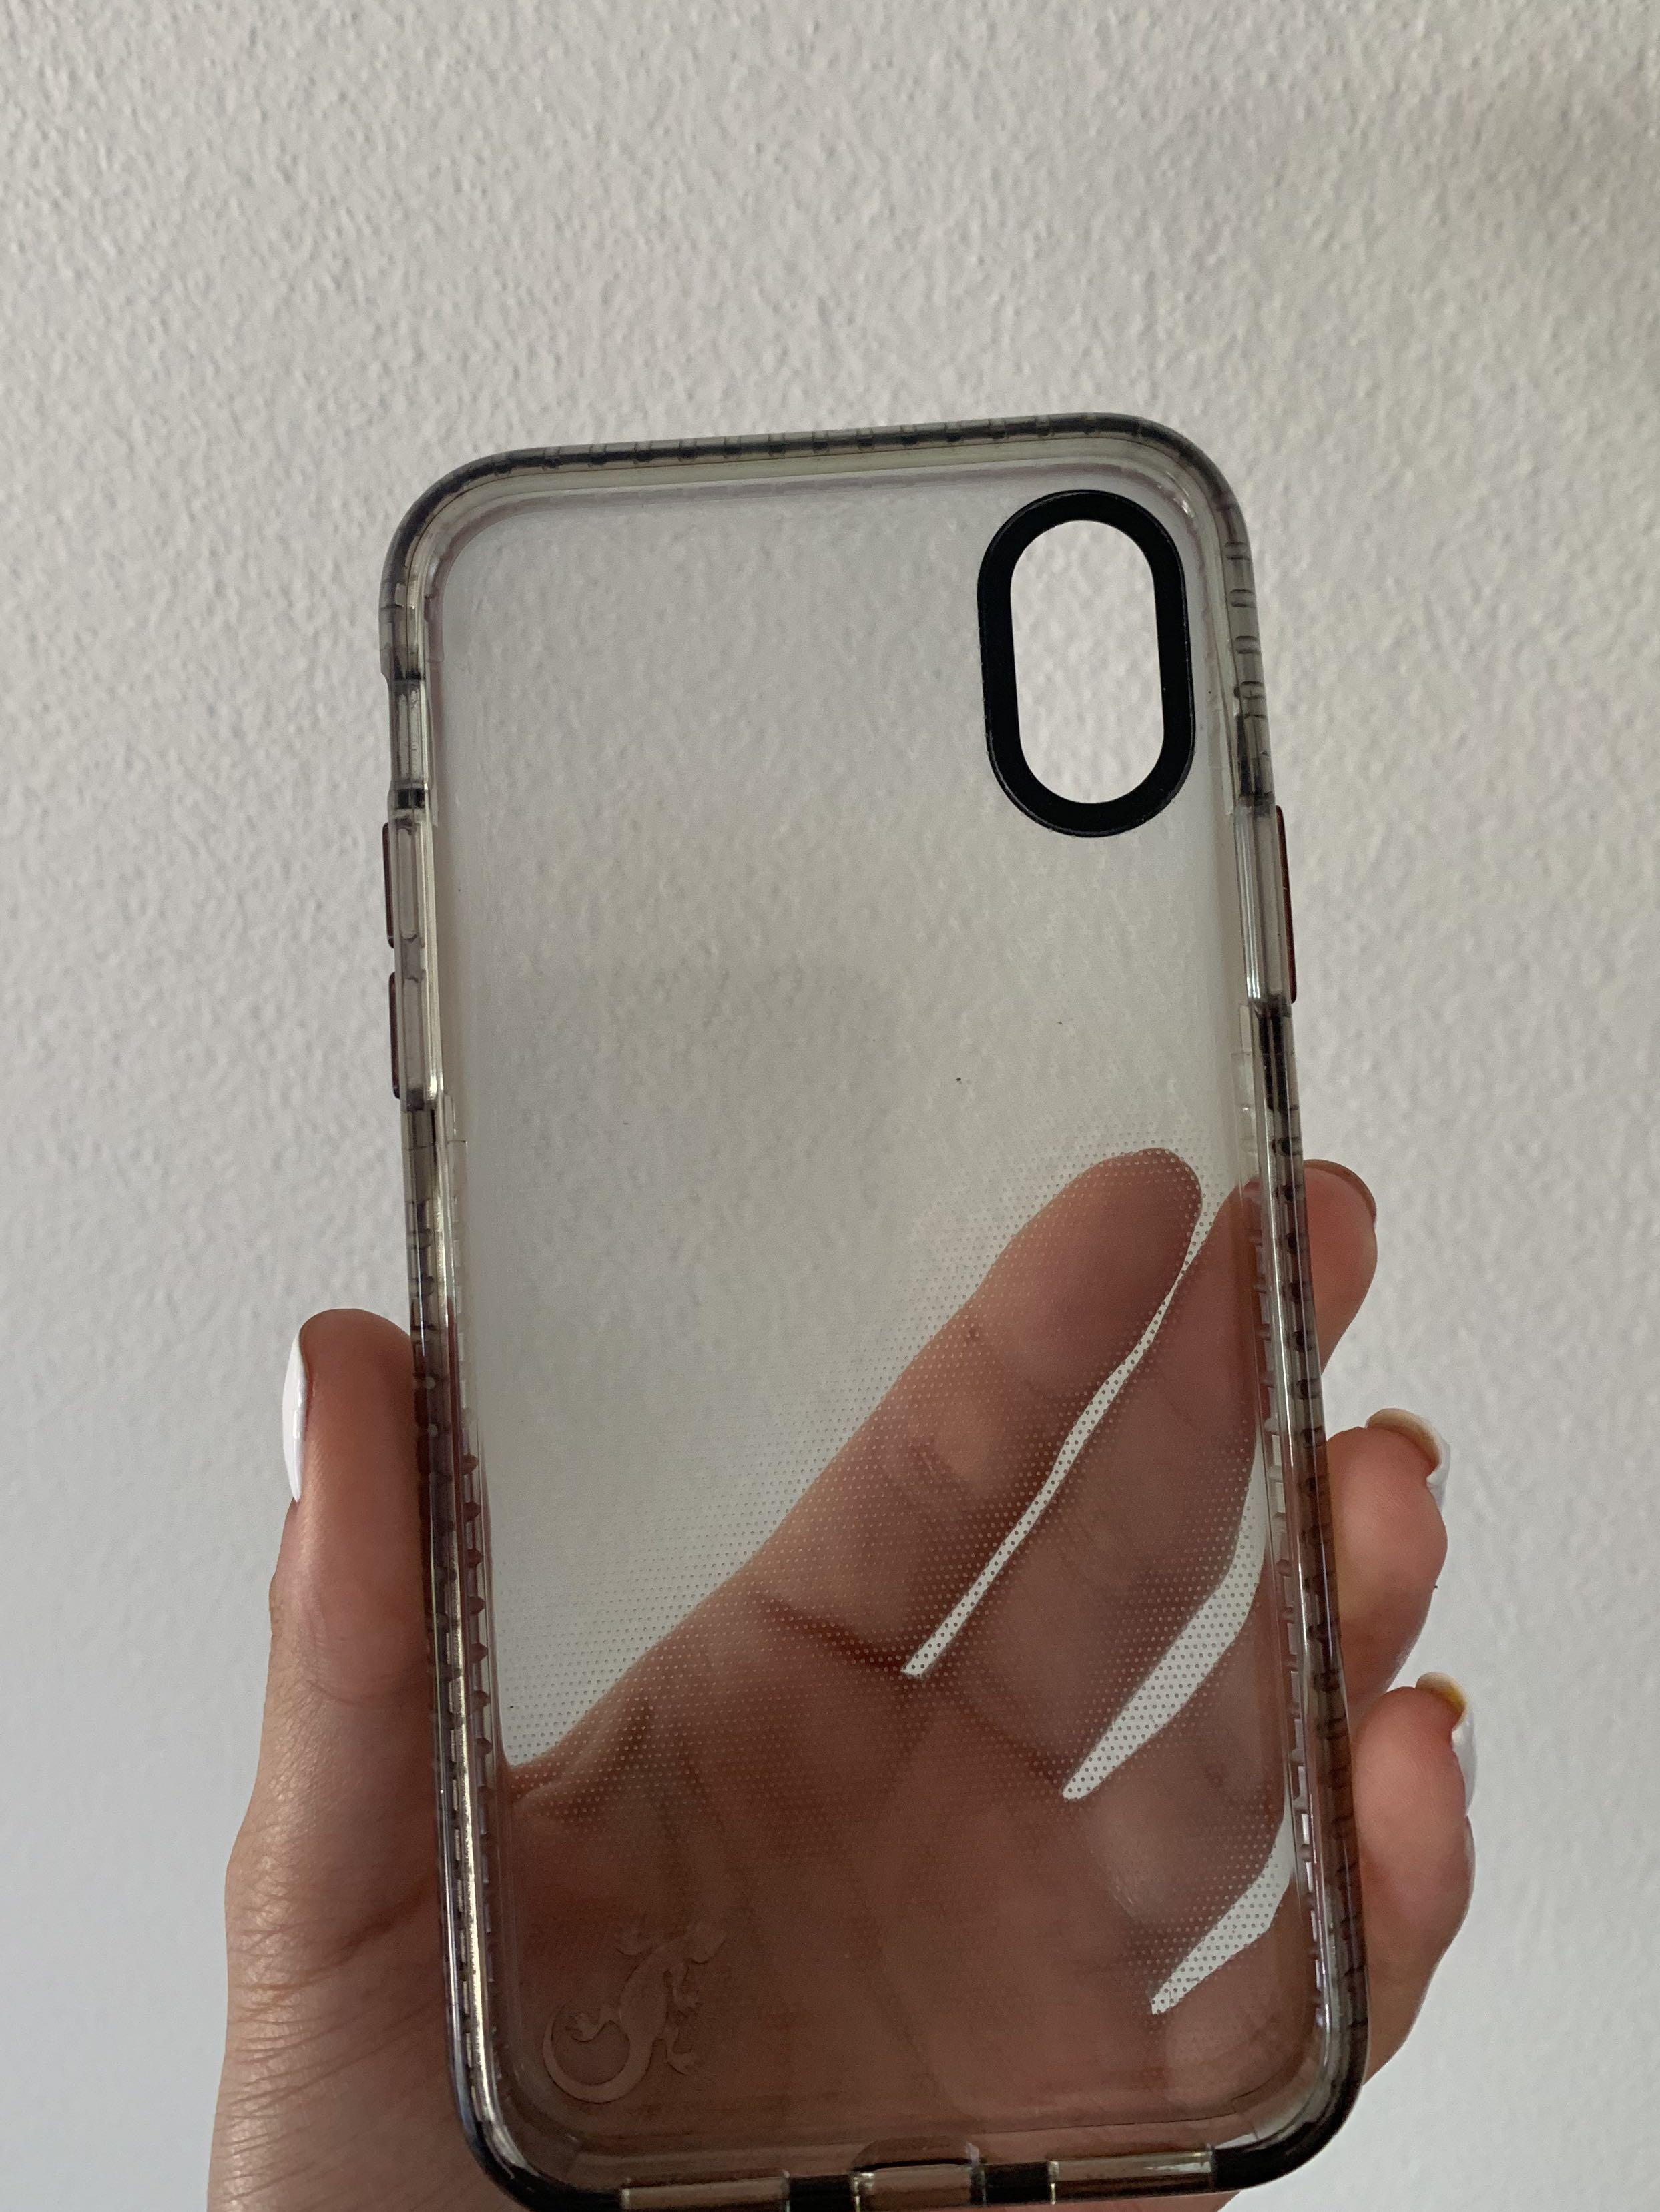 Gecko ultra tough bump slim case for iPhone X or iPhone XS grey